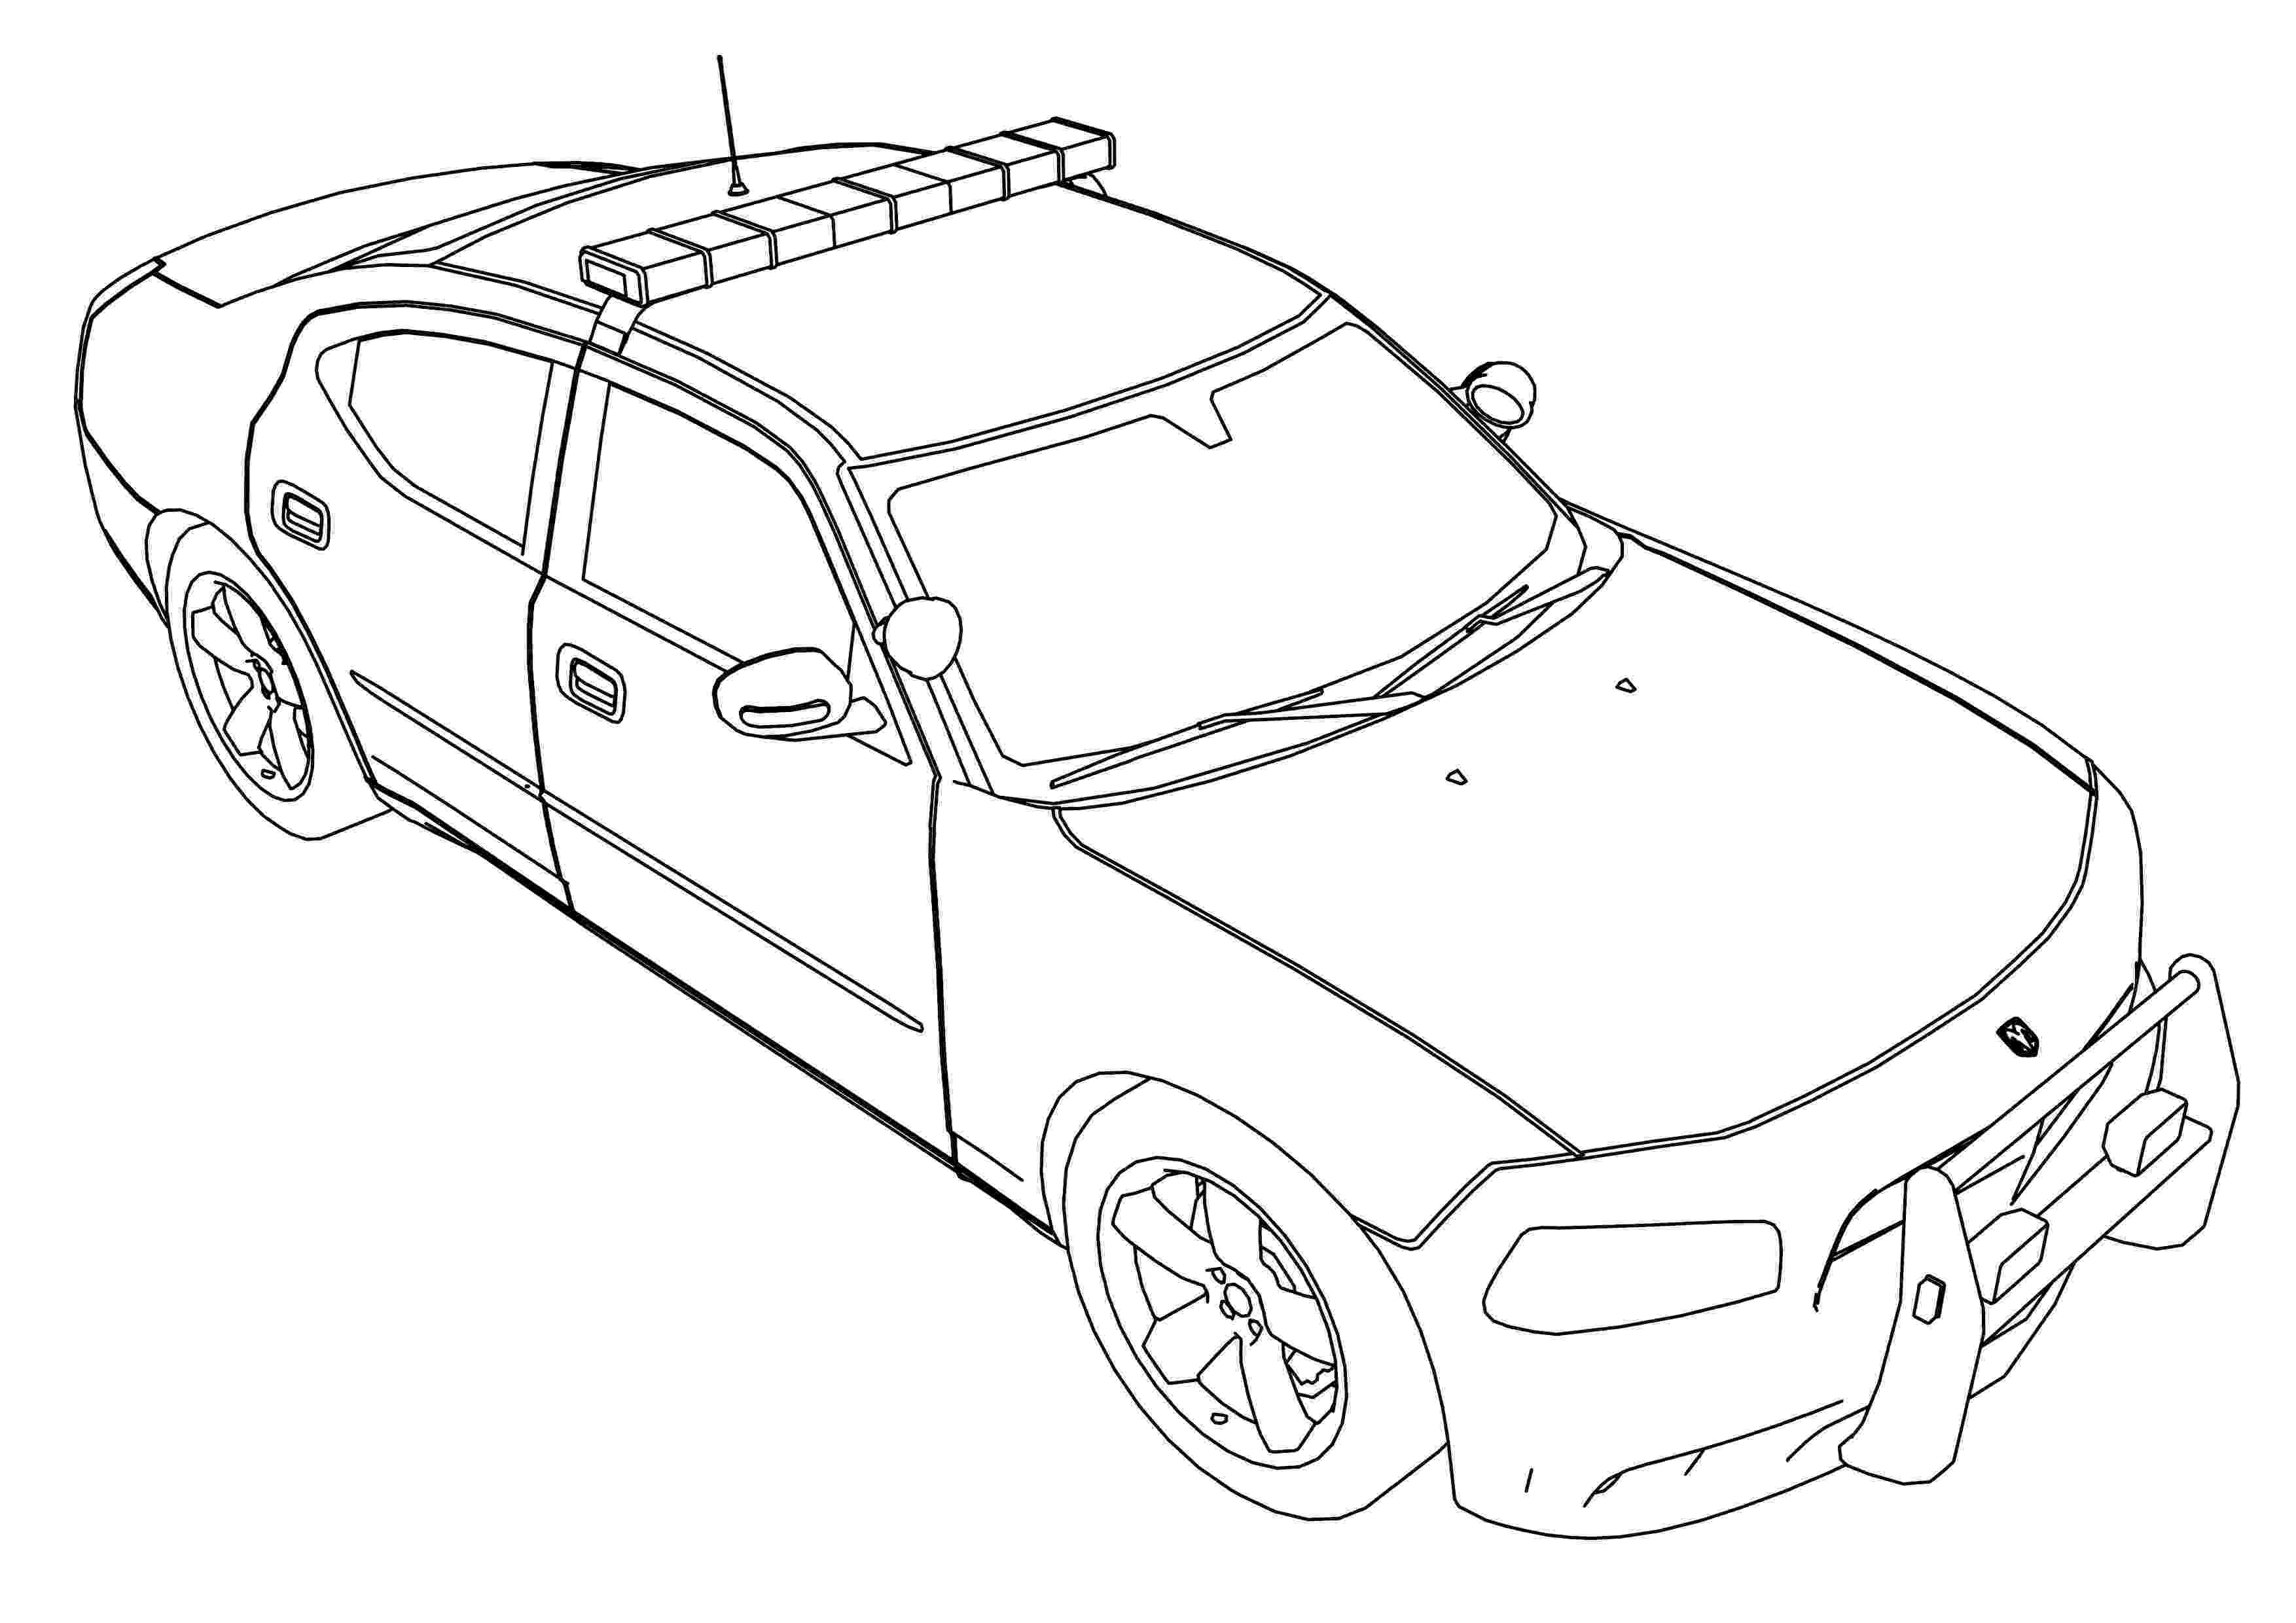 cop car coloring pages police car coloring pages getcoloringpagescom cop pages coloring car